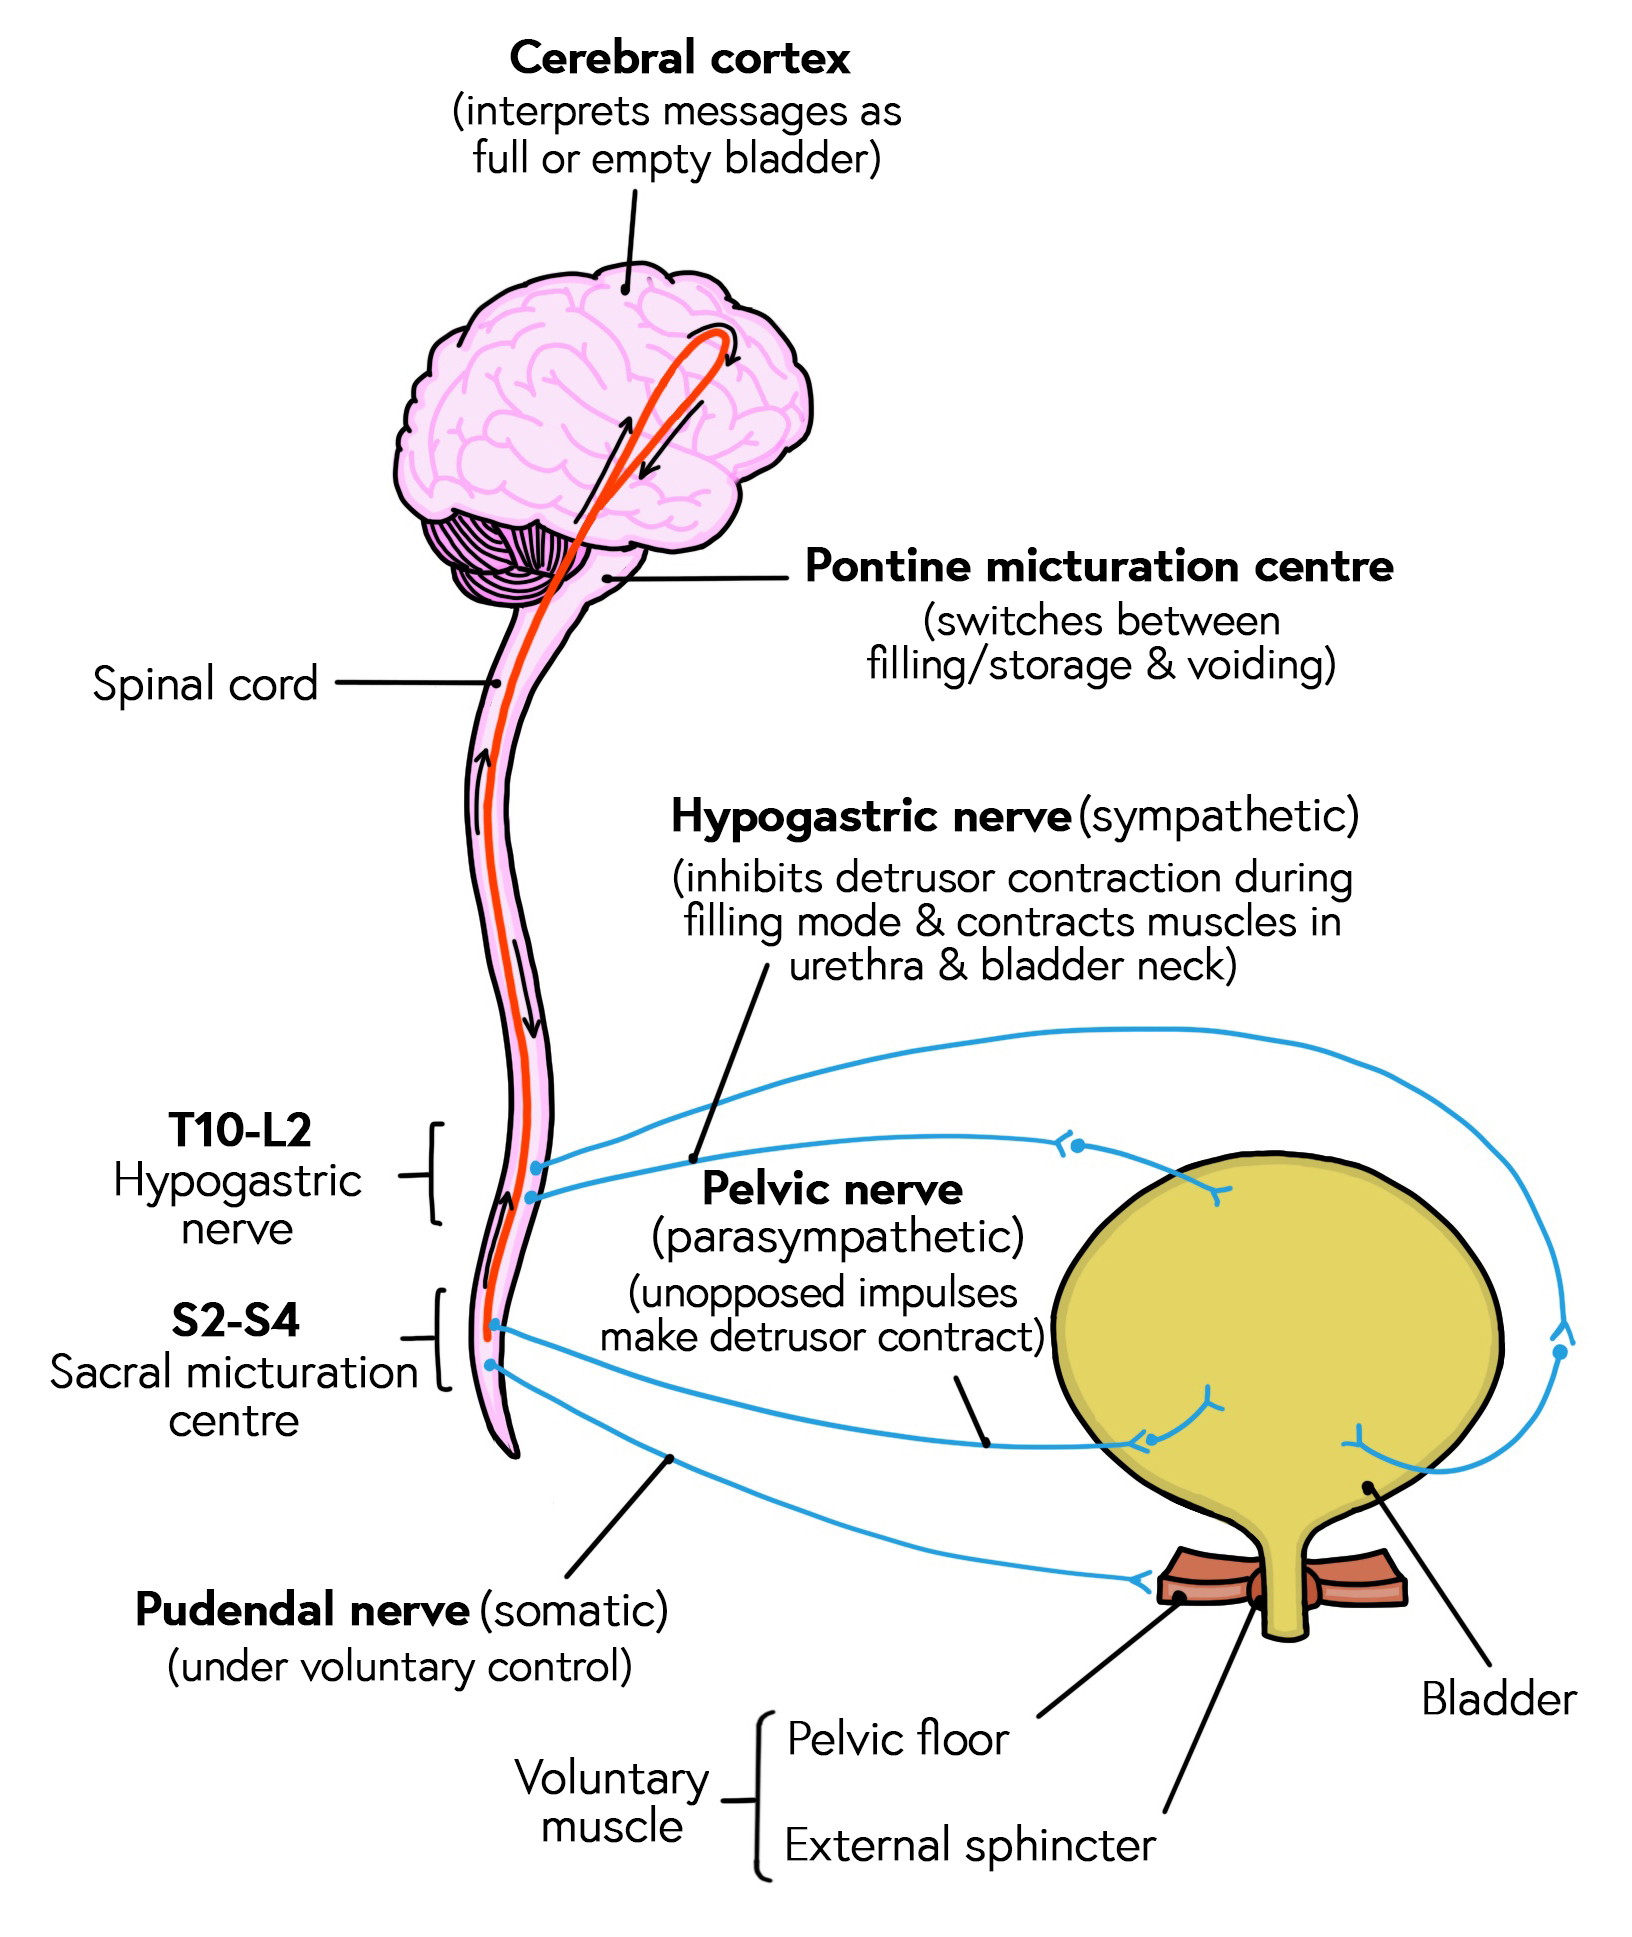 Diagram showing how the bladder and sphincter are innervated